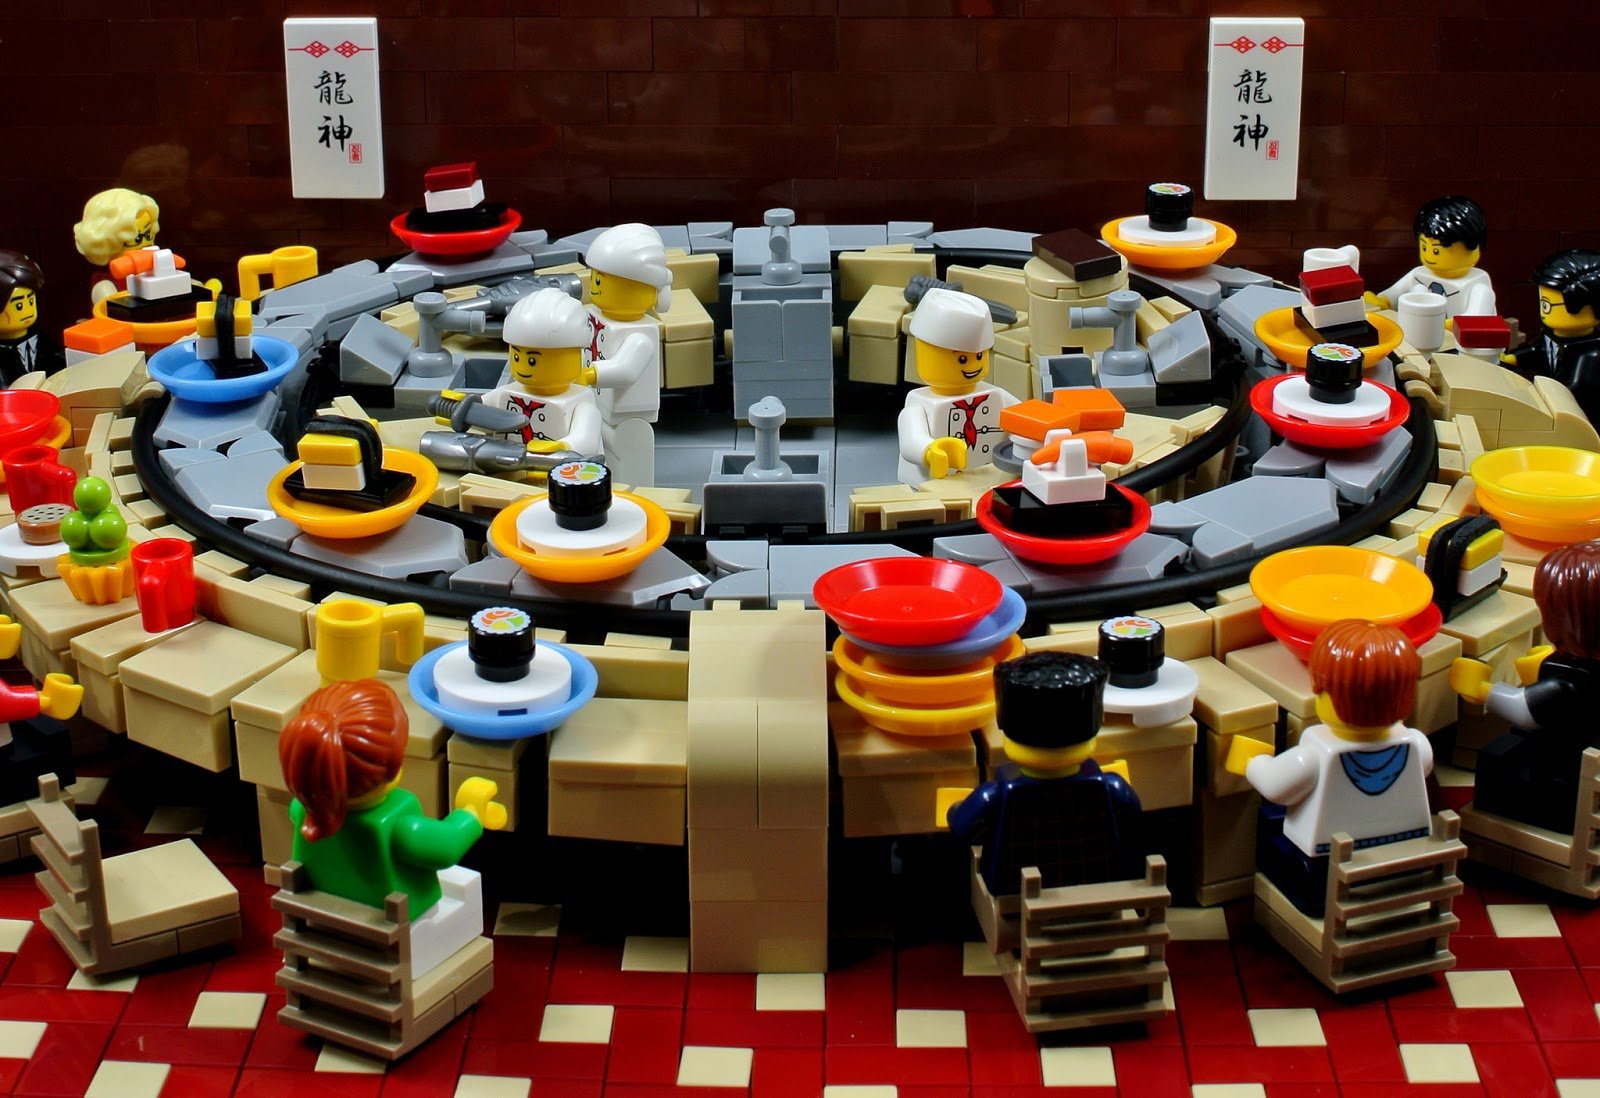 lego flextronics relationship challanges Graduates of miskolci egyetem - the names, photos, skill,  july 2015 flextronics january  general experience i am looking for new challanges in scm area.